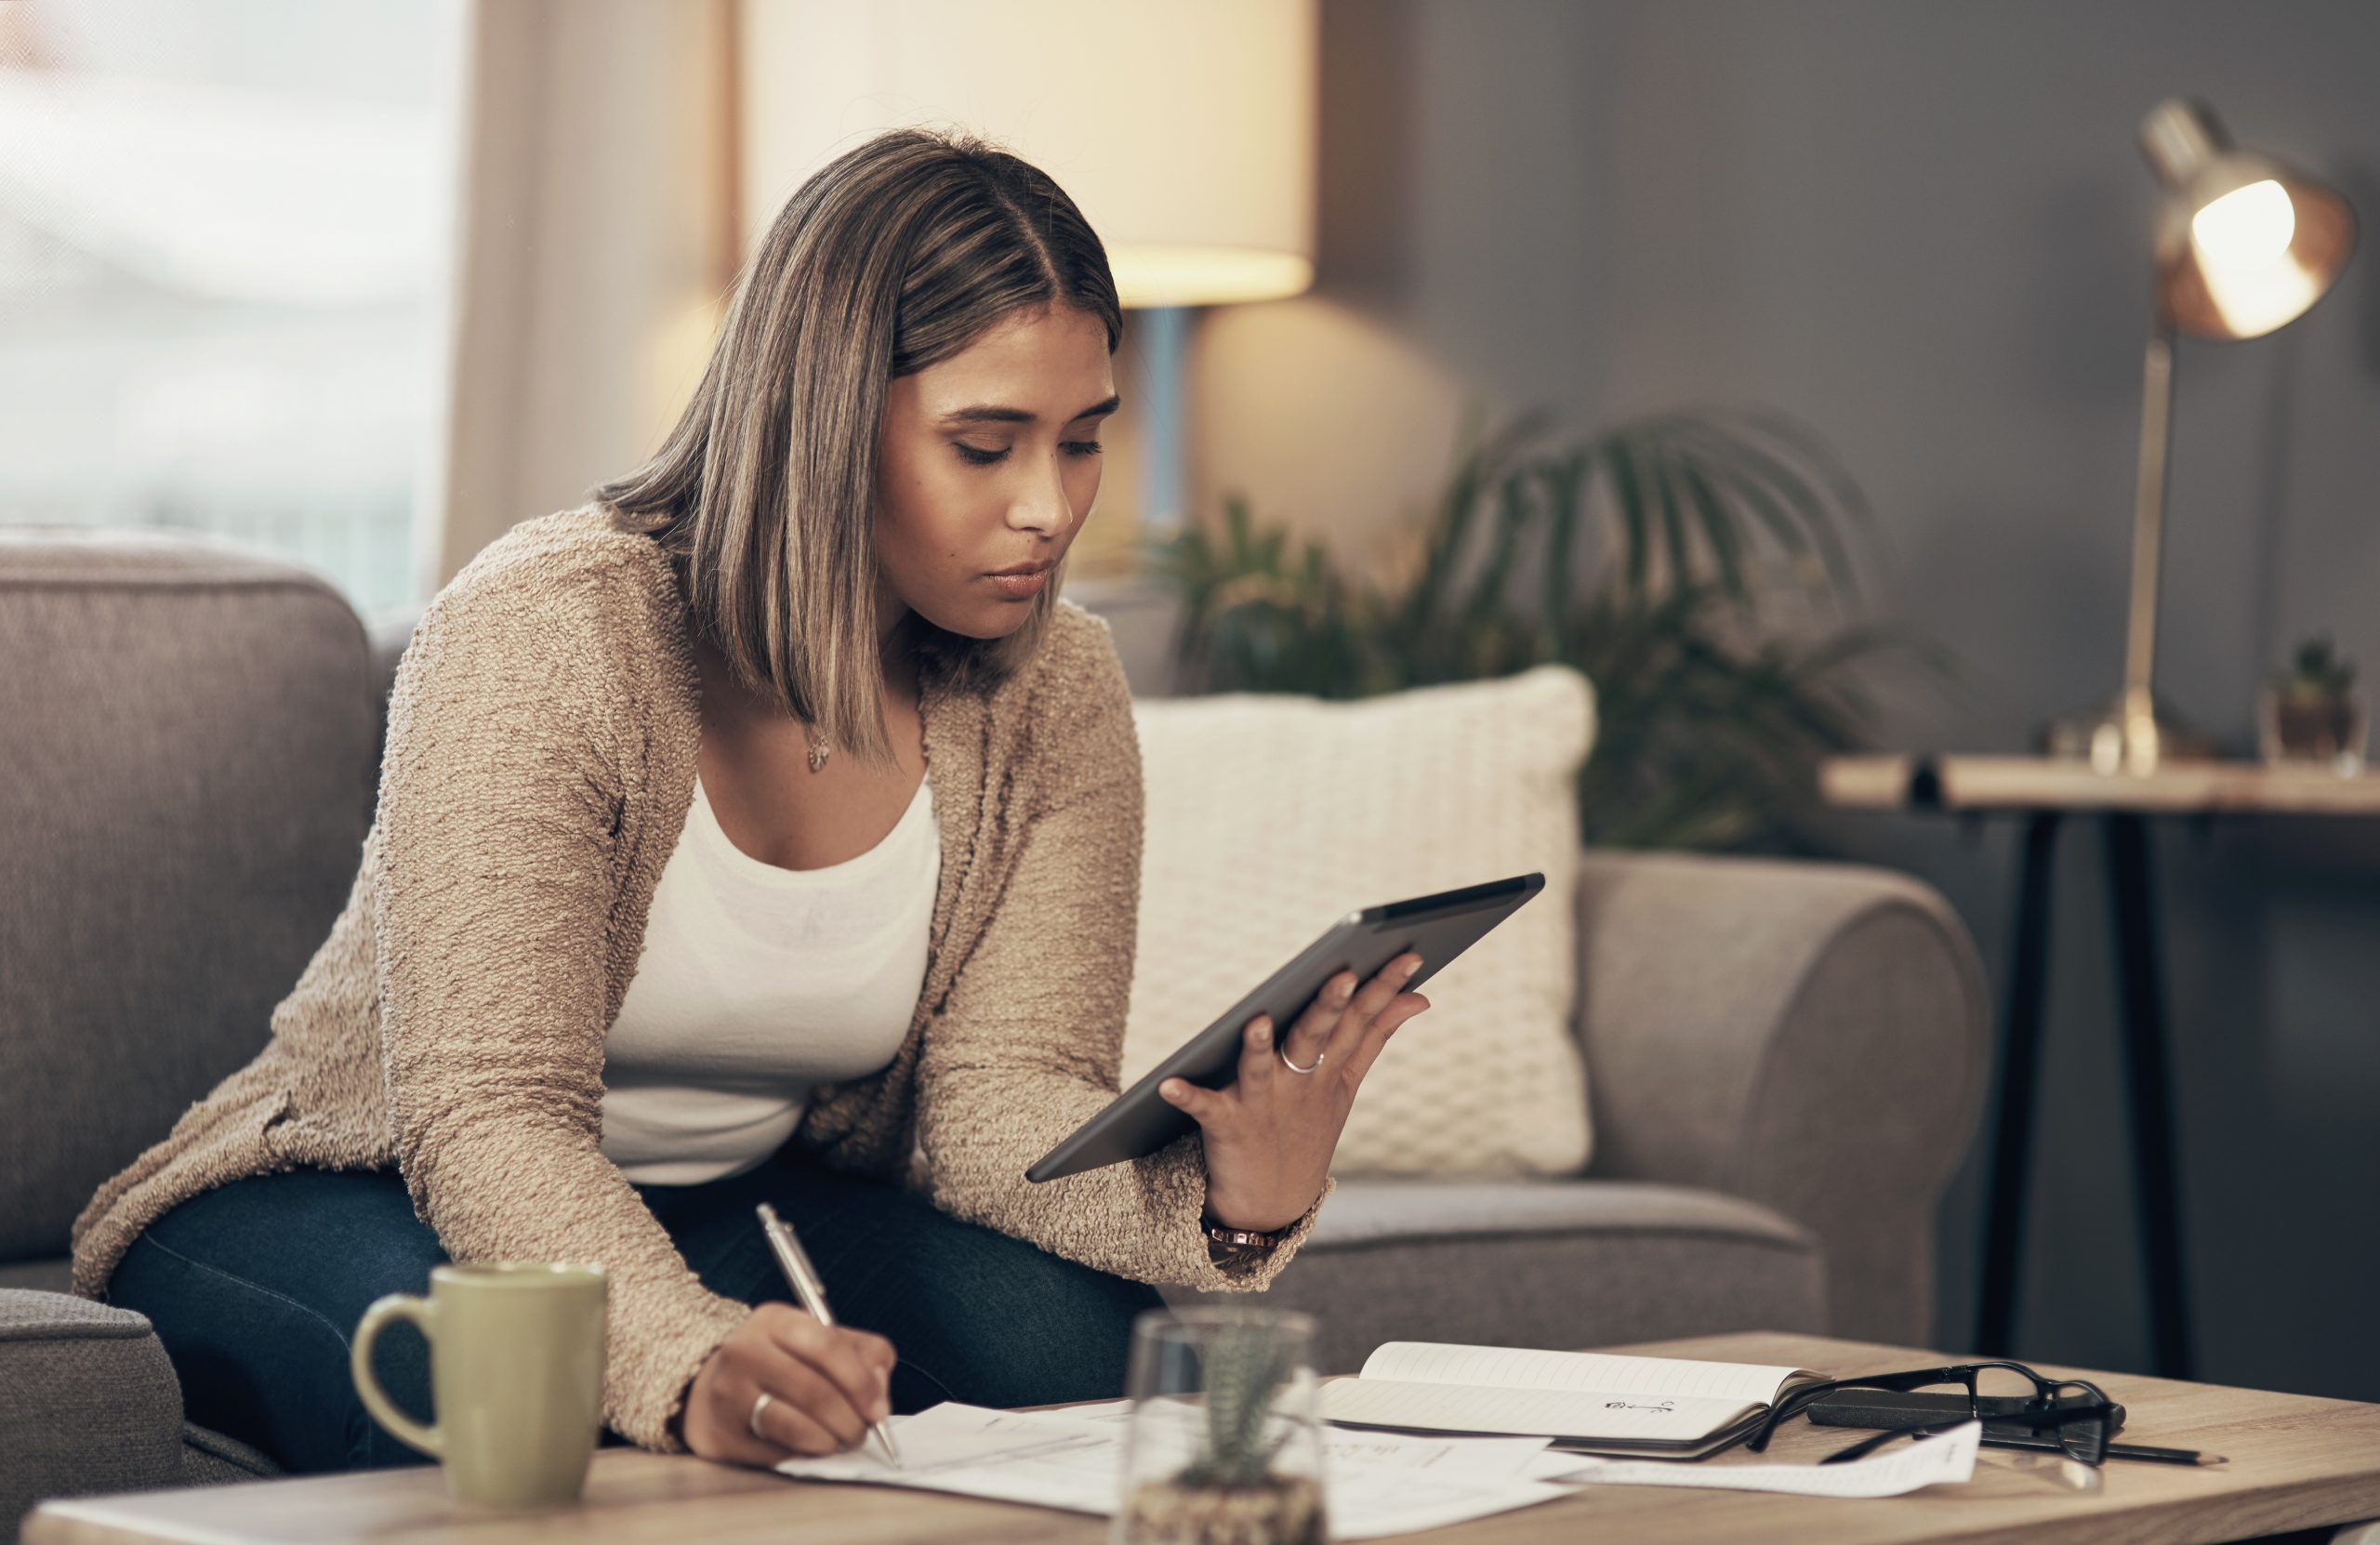 Shot of a young woman using a digital tablet while going through paperwork at home